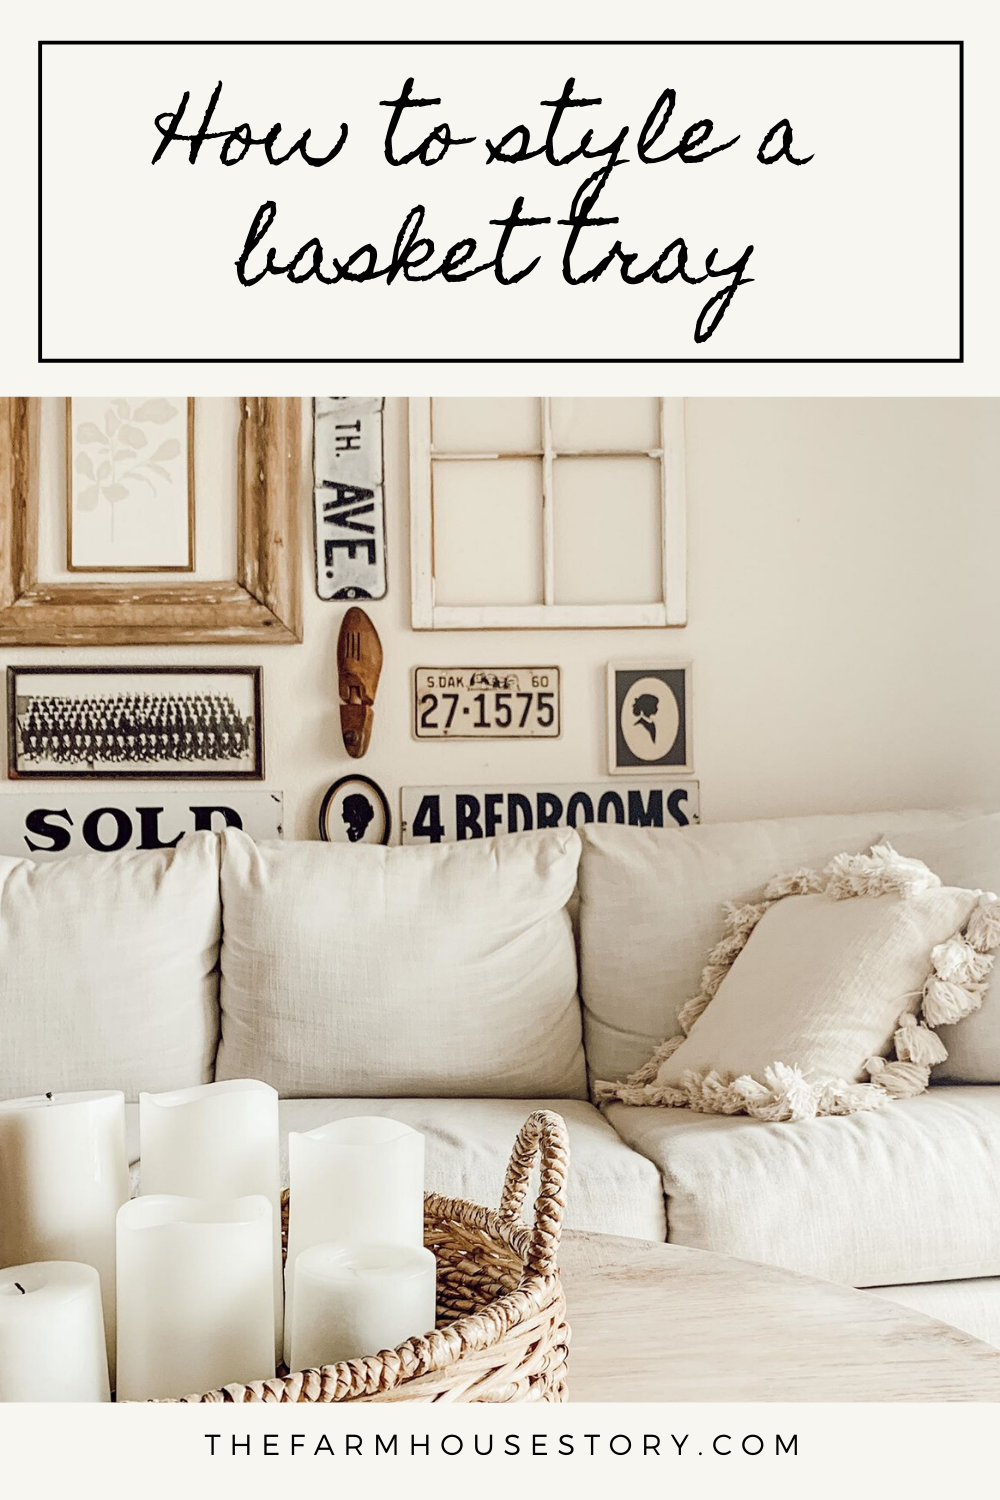 Learn how to style a basket tray two simple ways on the blog! #livingroom #neutraldecor #baskettray